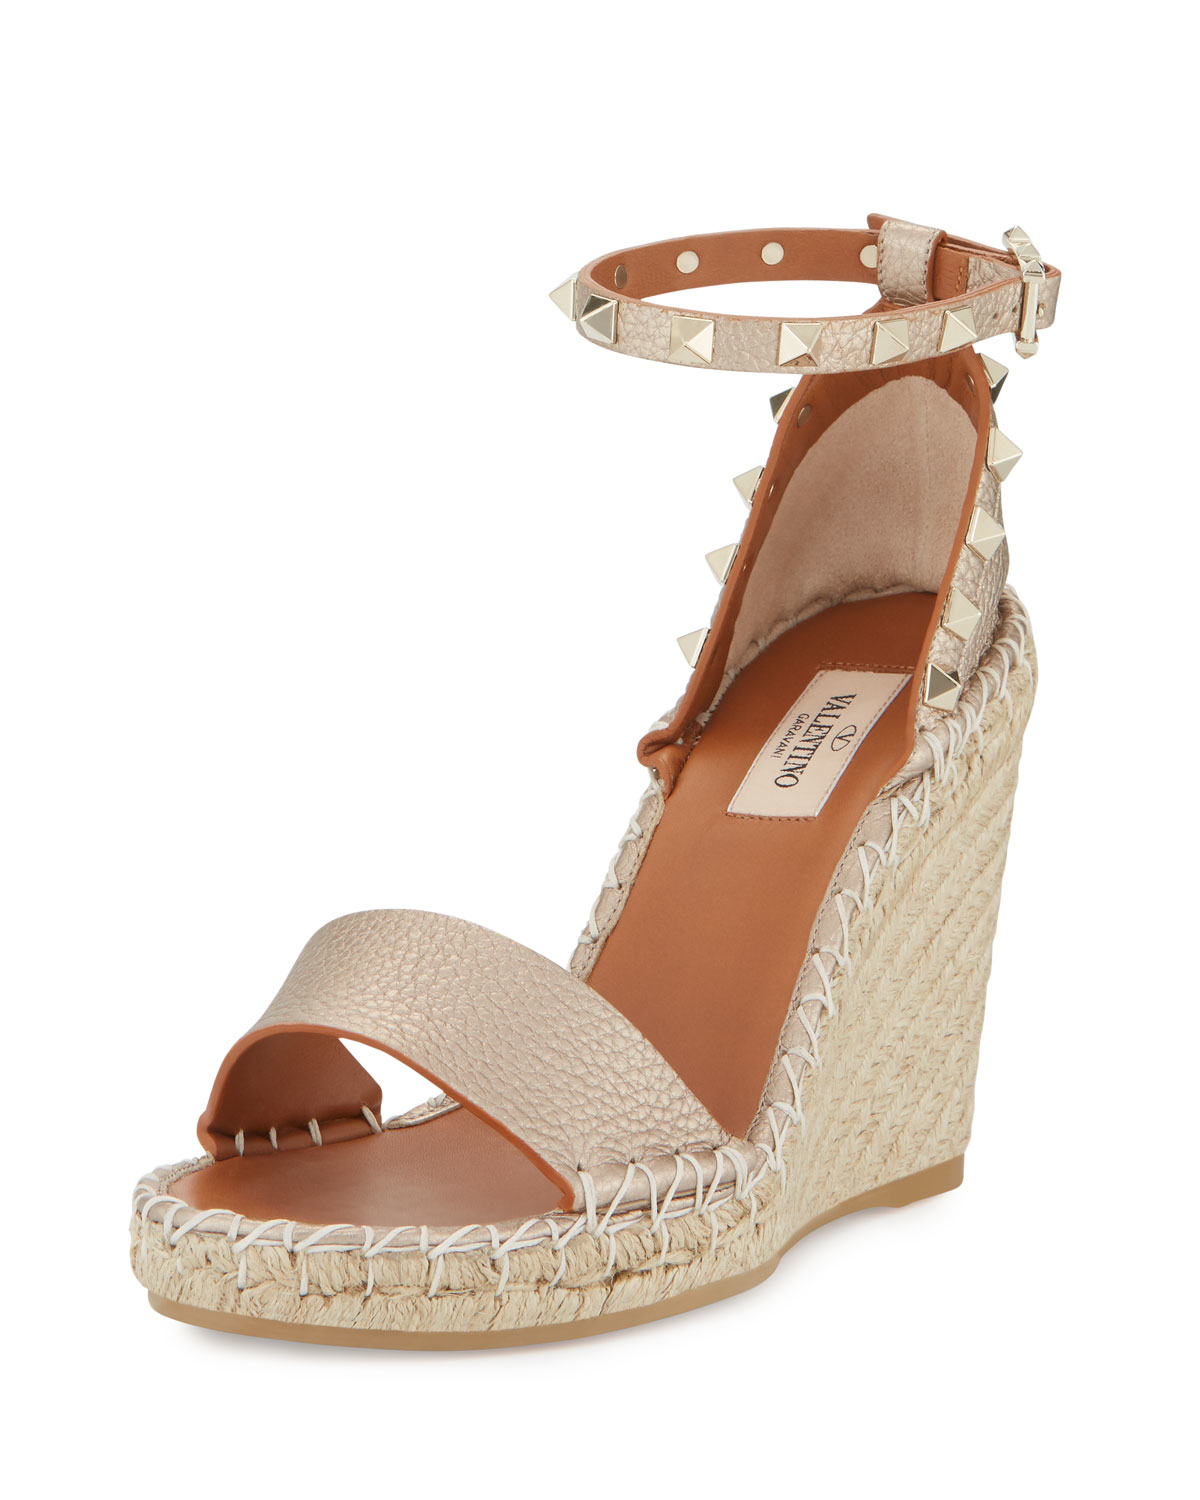 5f7dbfade8e2 Valentino Wedge Sandals. Valentino Studded Espadrille Wedge Sandals in Blue